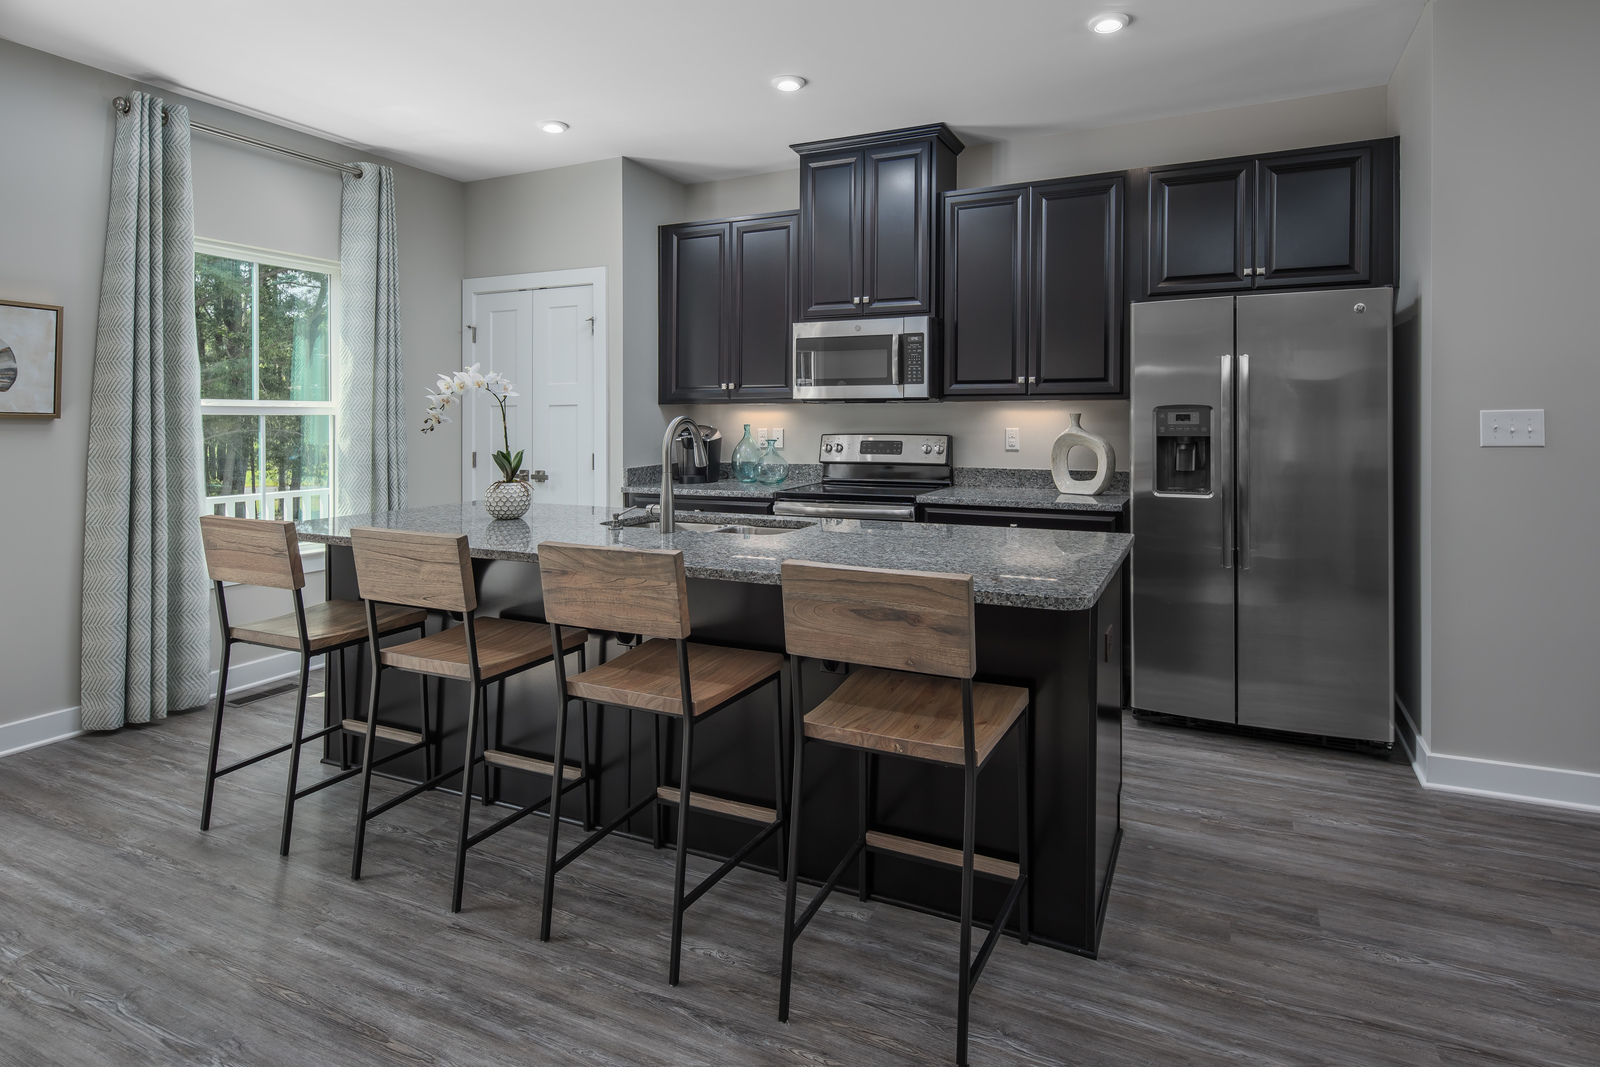 New mendelssohn townhome model for sale at 751 south in durham nc